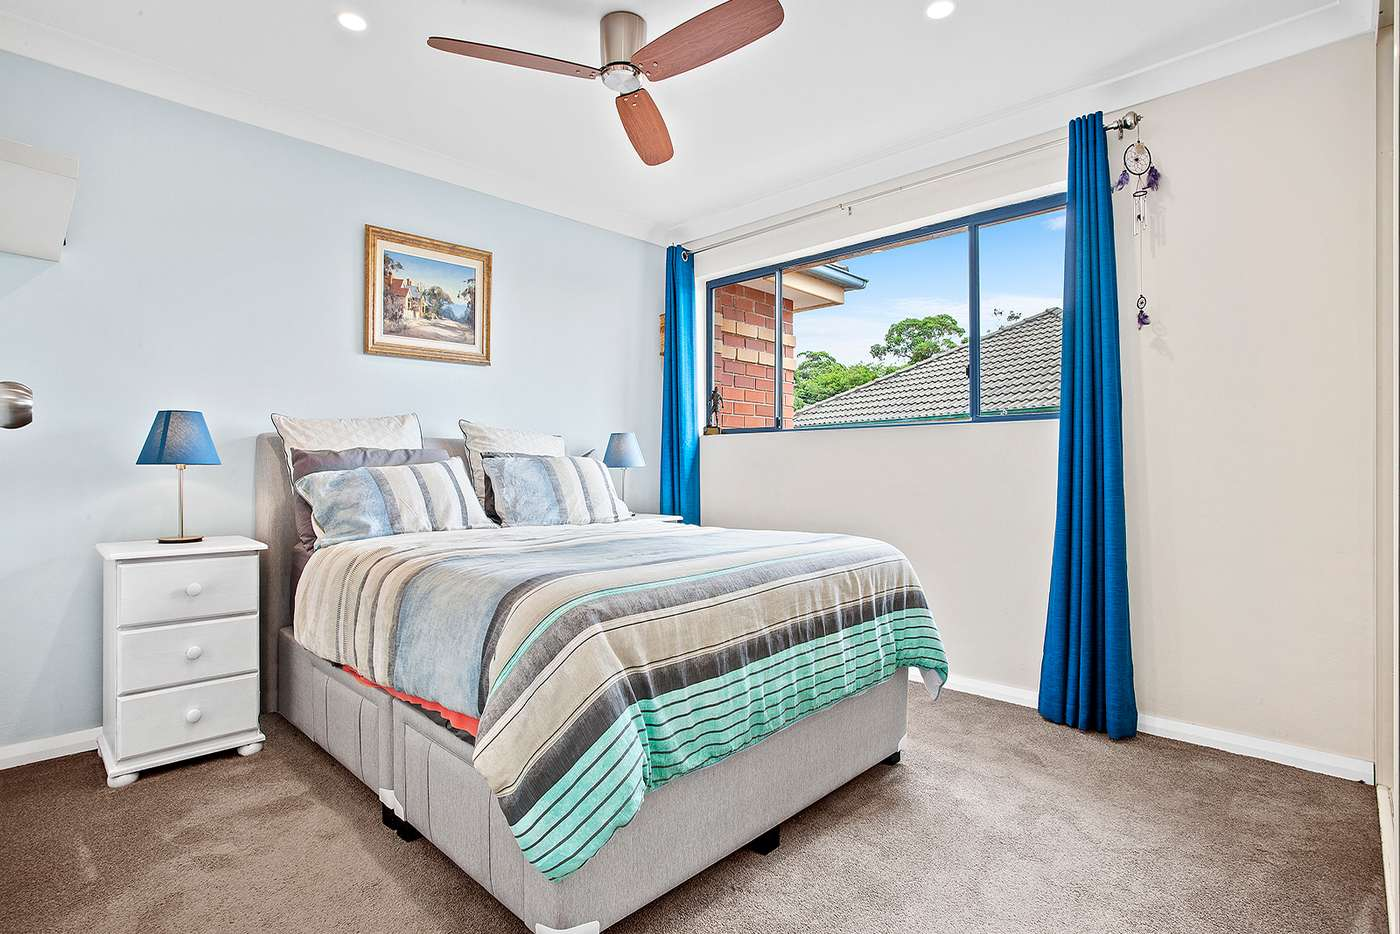 Fifth view of Homely townhouse listing, 2/42 Portland Crescent, Maroubra NSW 2035